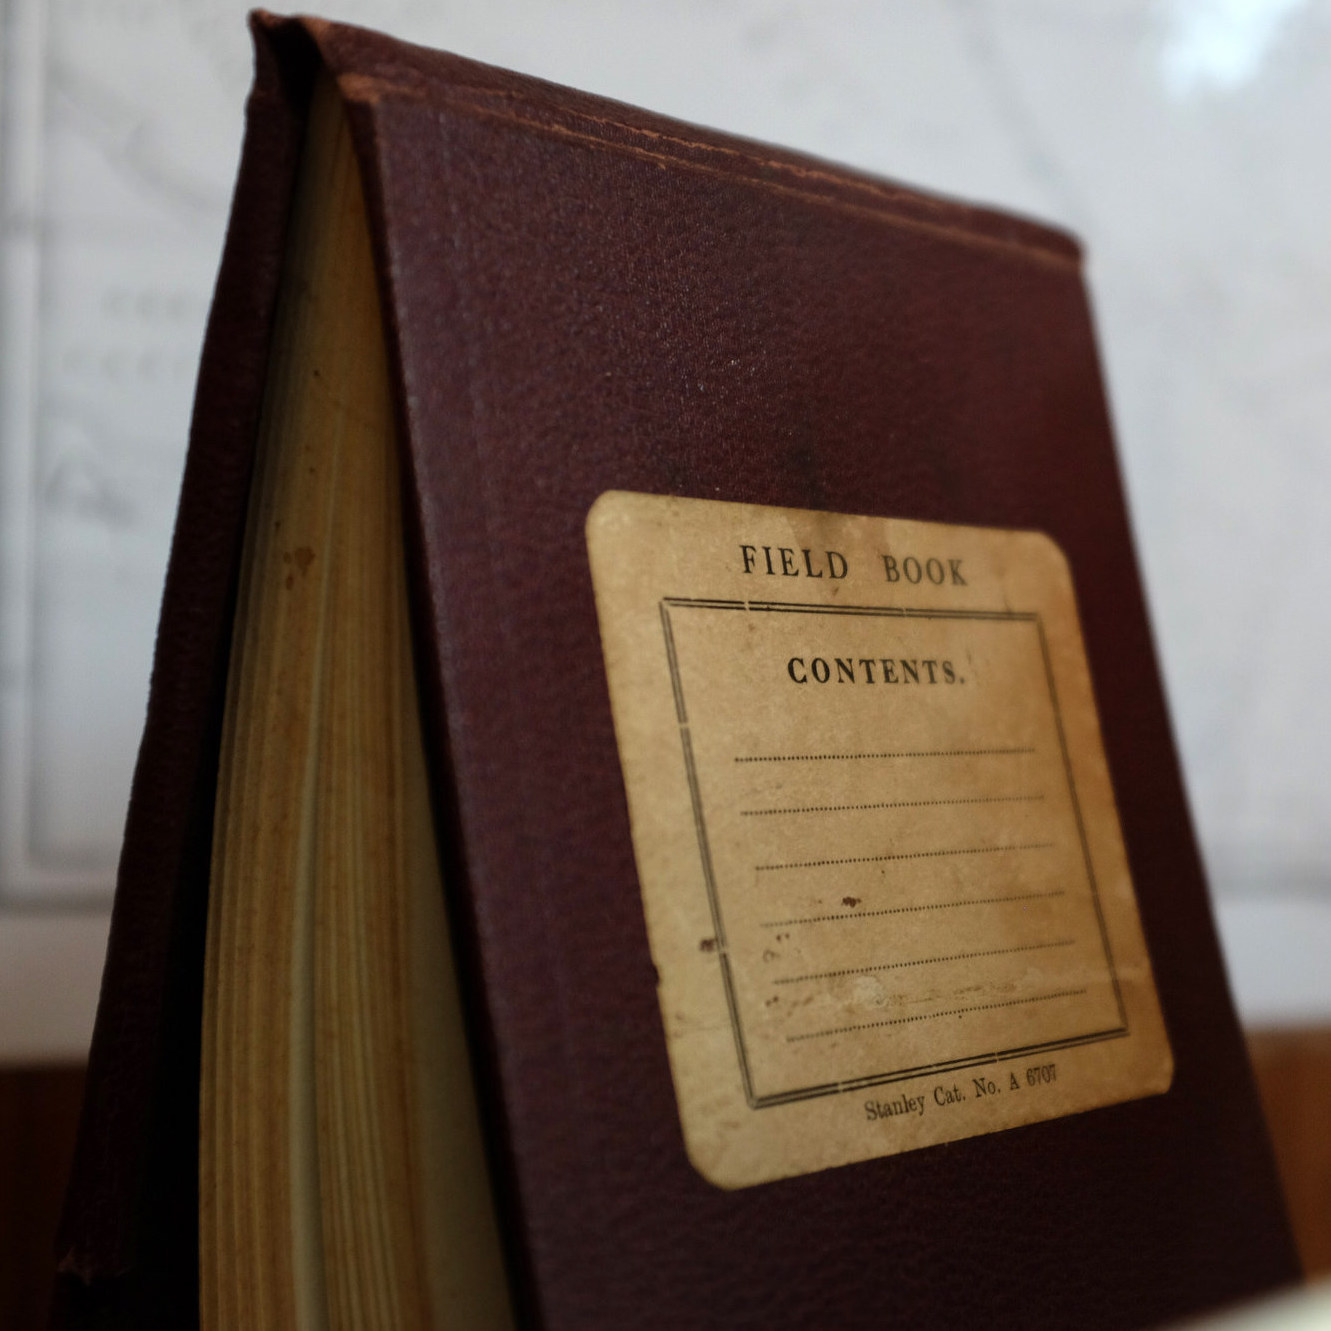 A field book standing on end